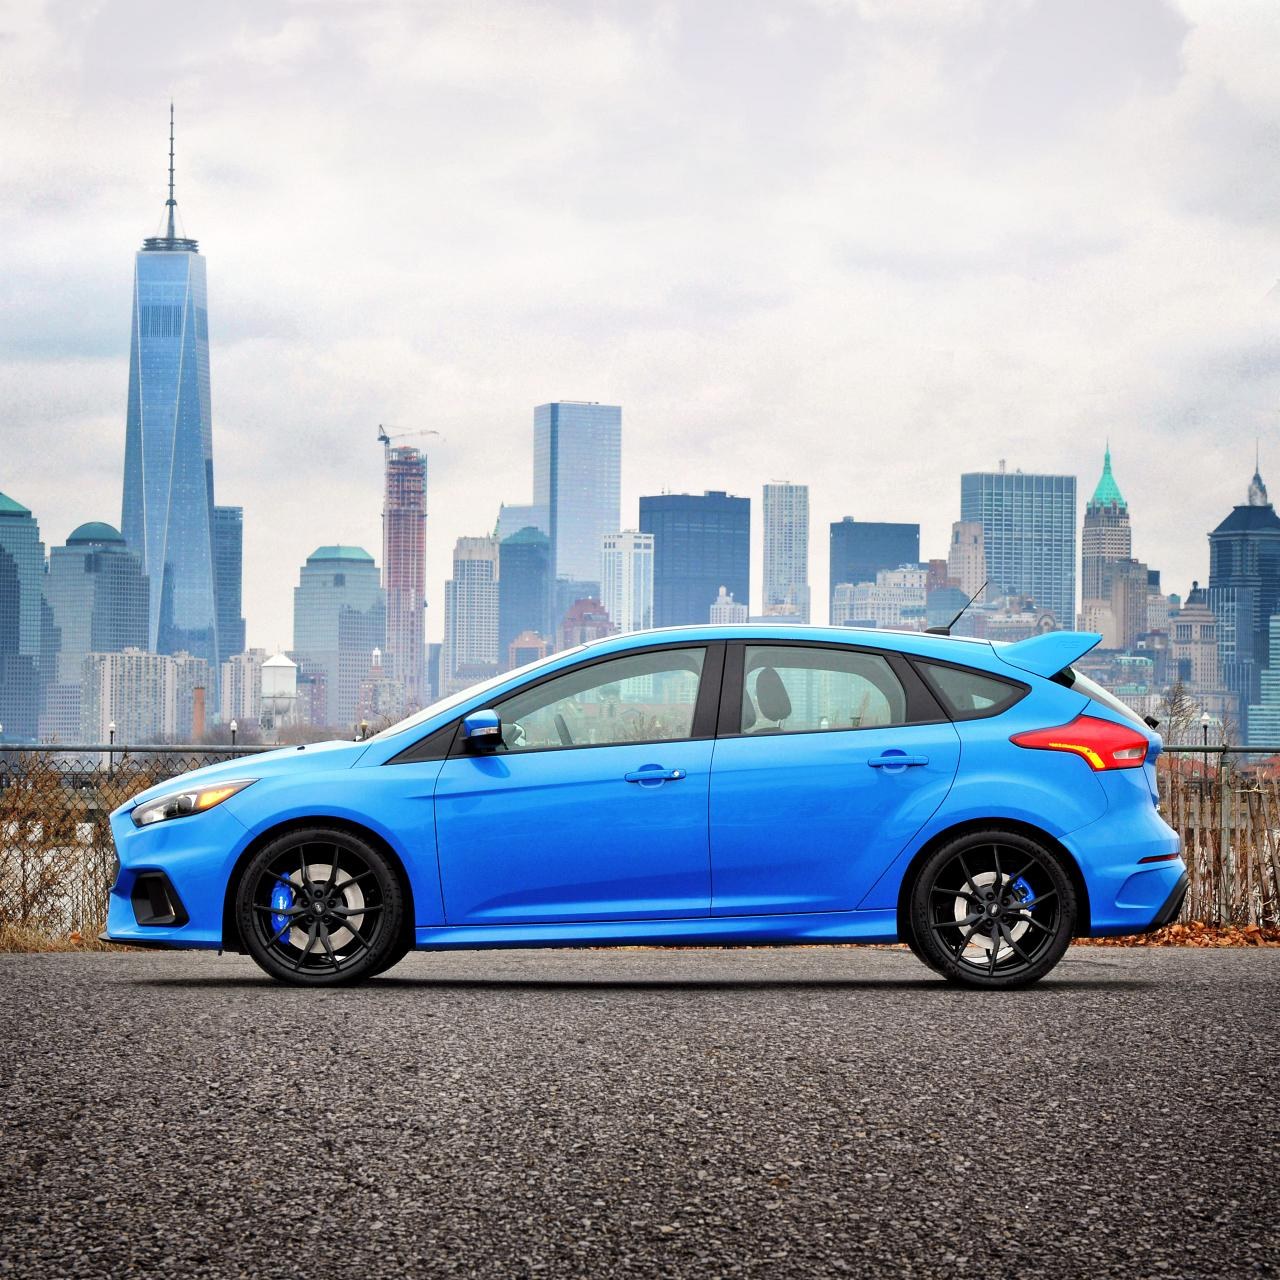 Ford-Hagemeier-FocusRS-NYSkyline-01-HR